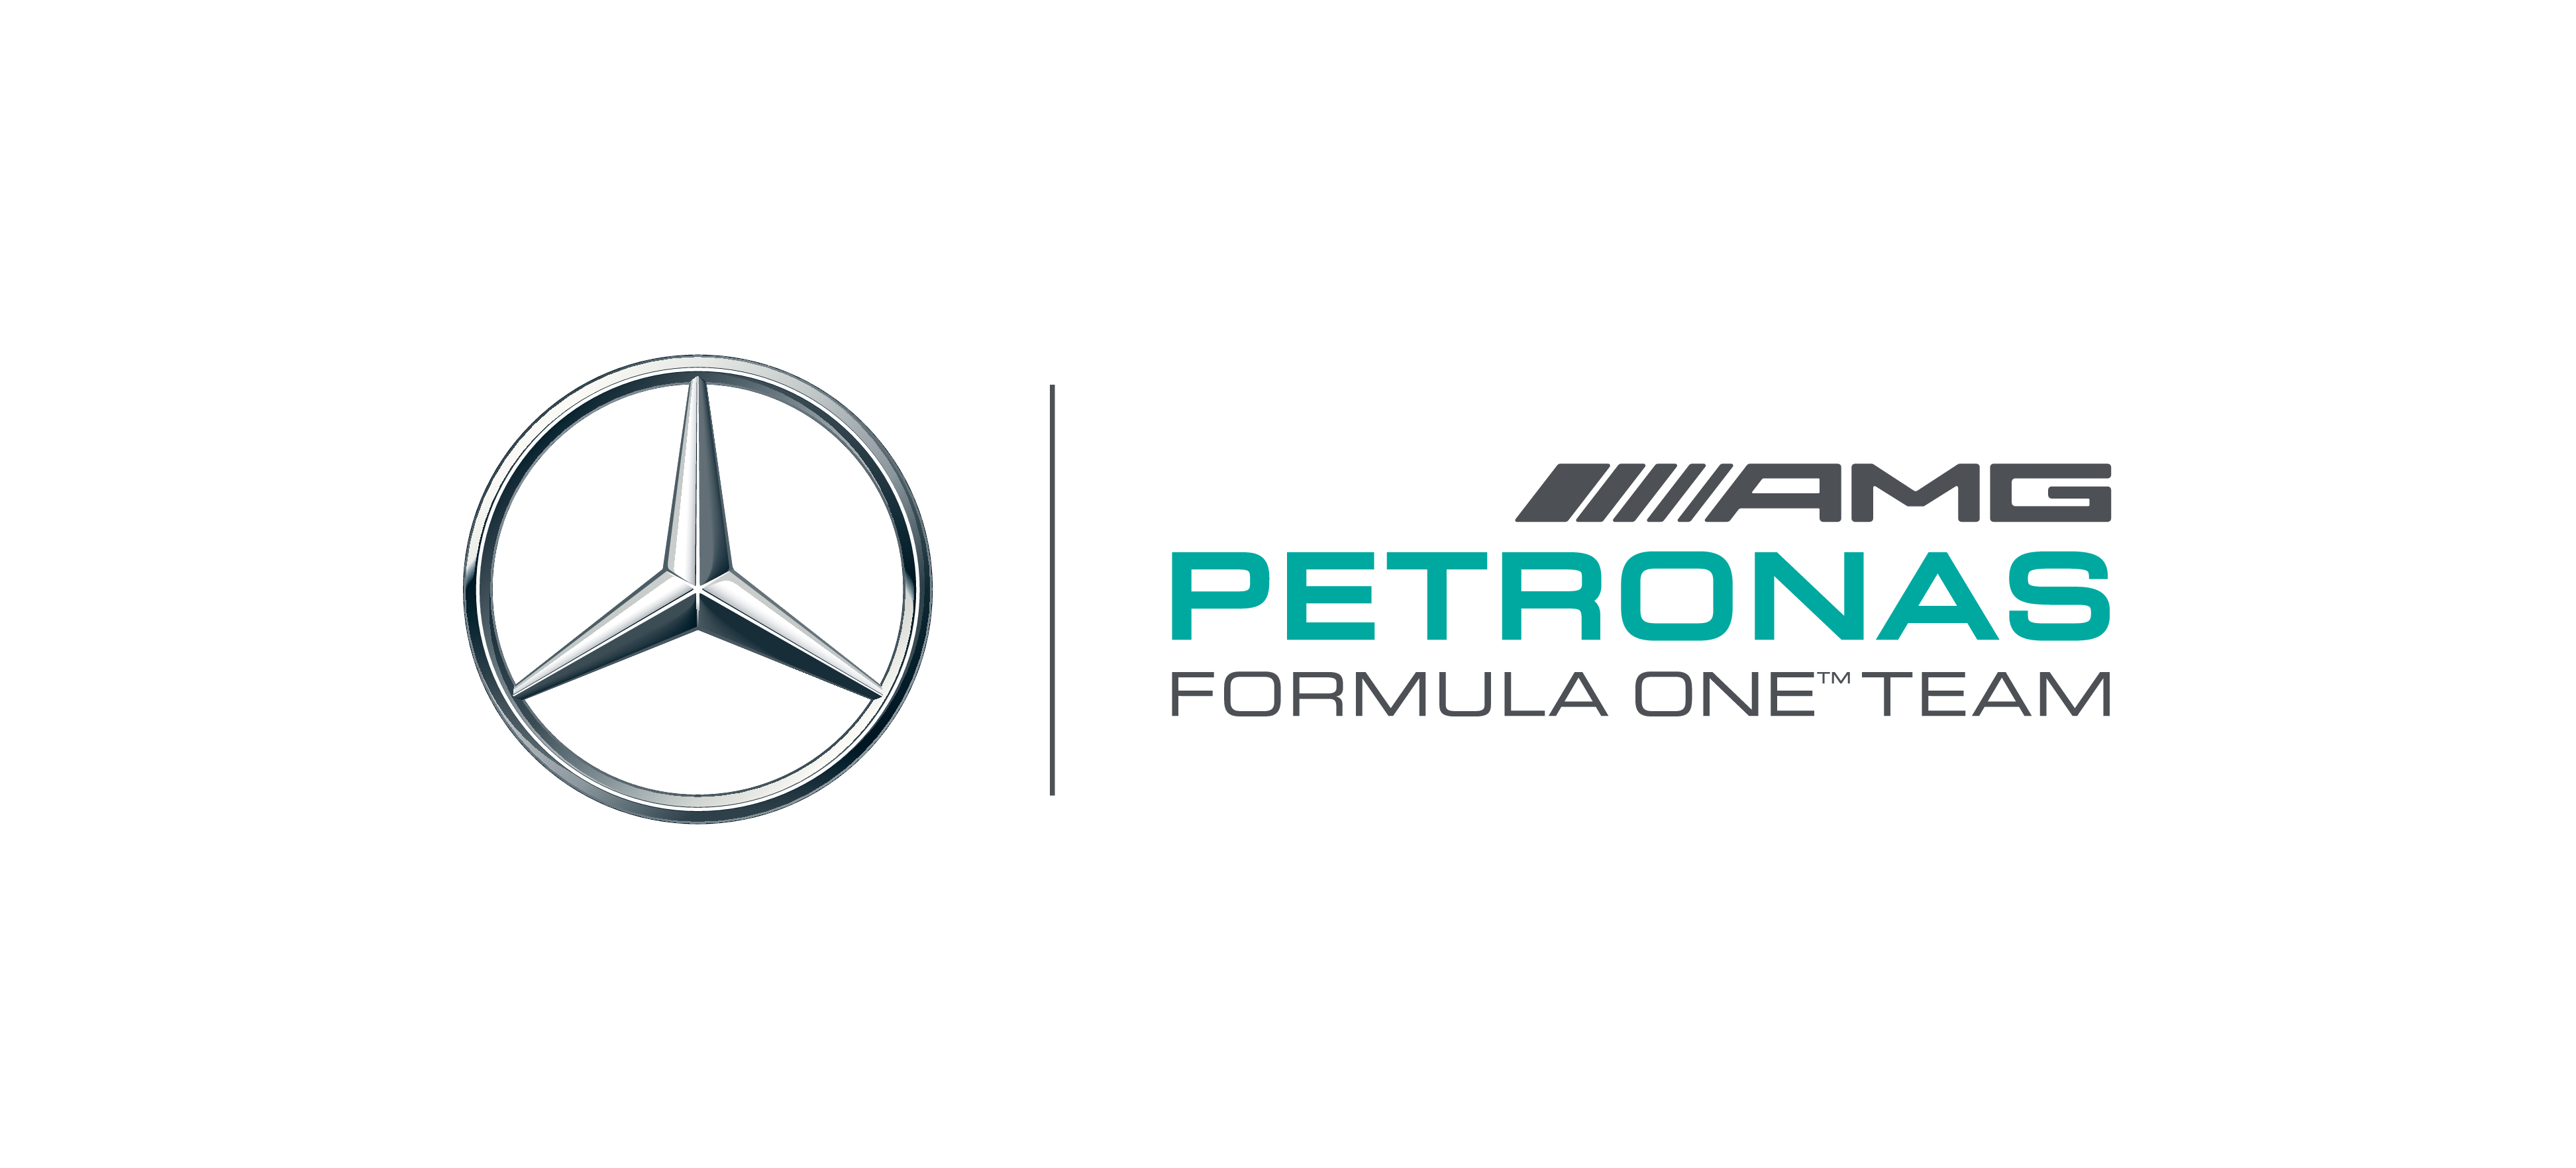 https://www.aeroworksproductions.com/wp-content/uploads/2018/06/Mercedes-F-1-Racing.jpg